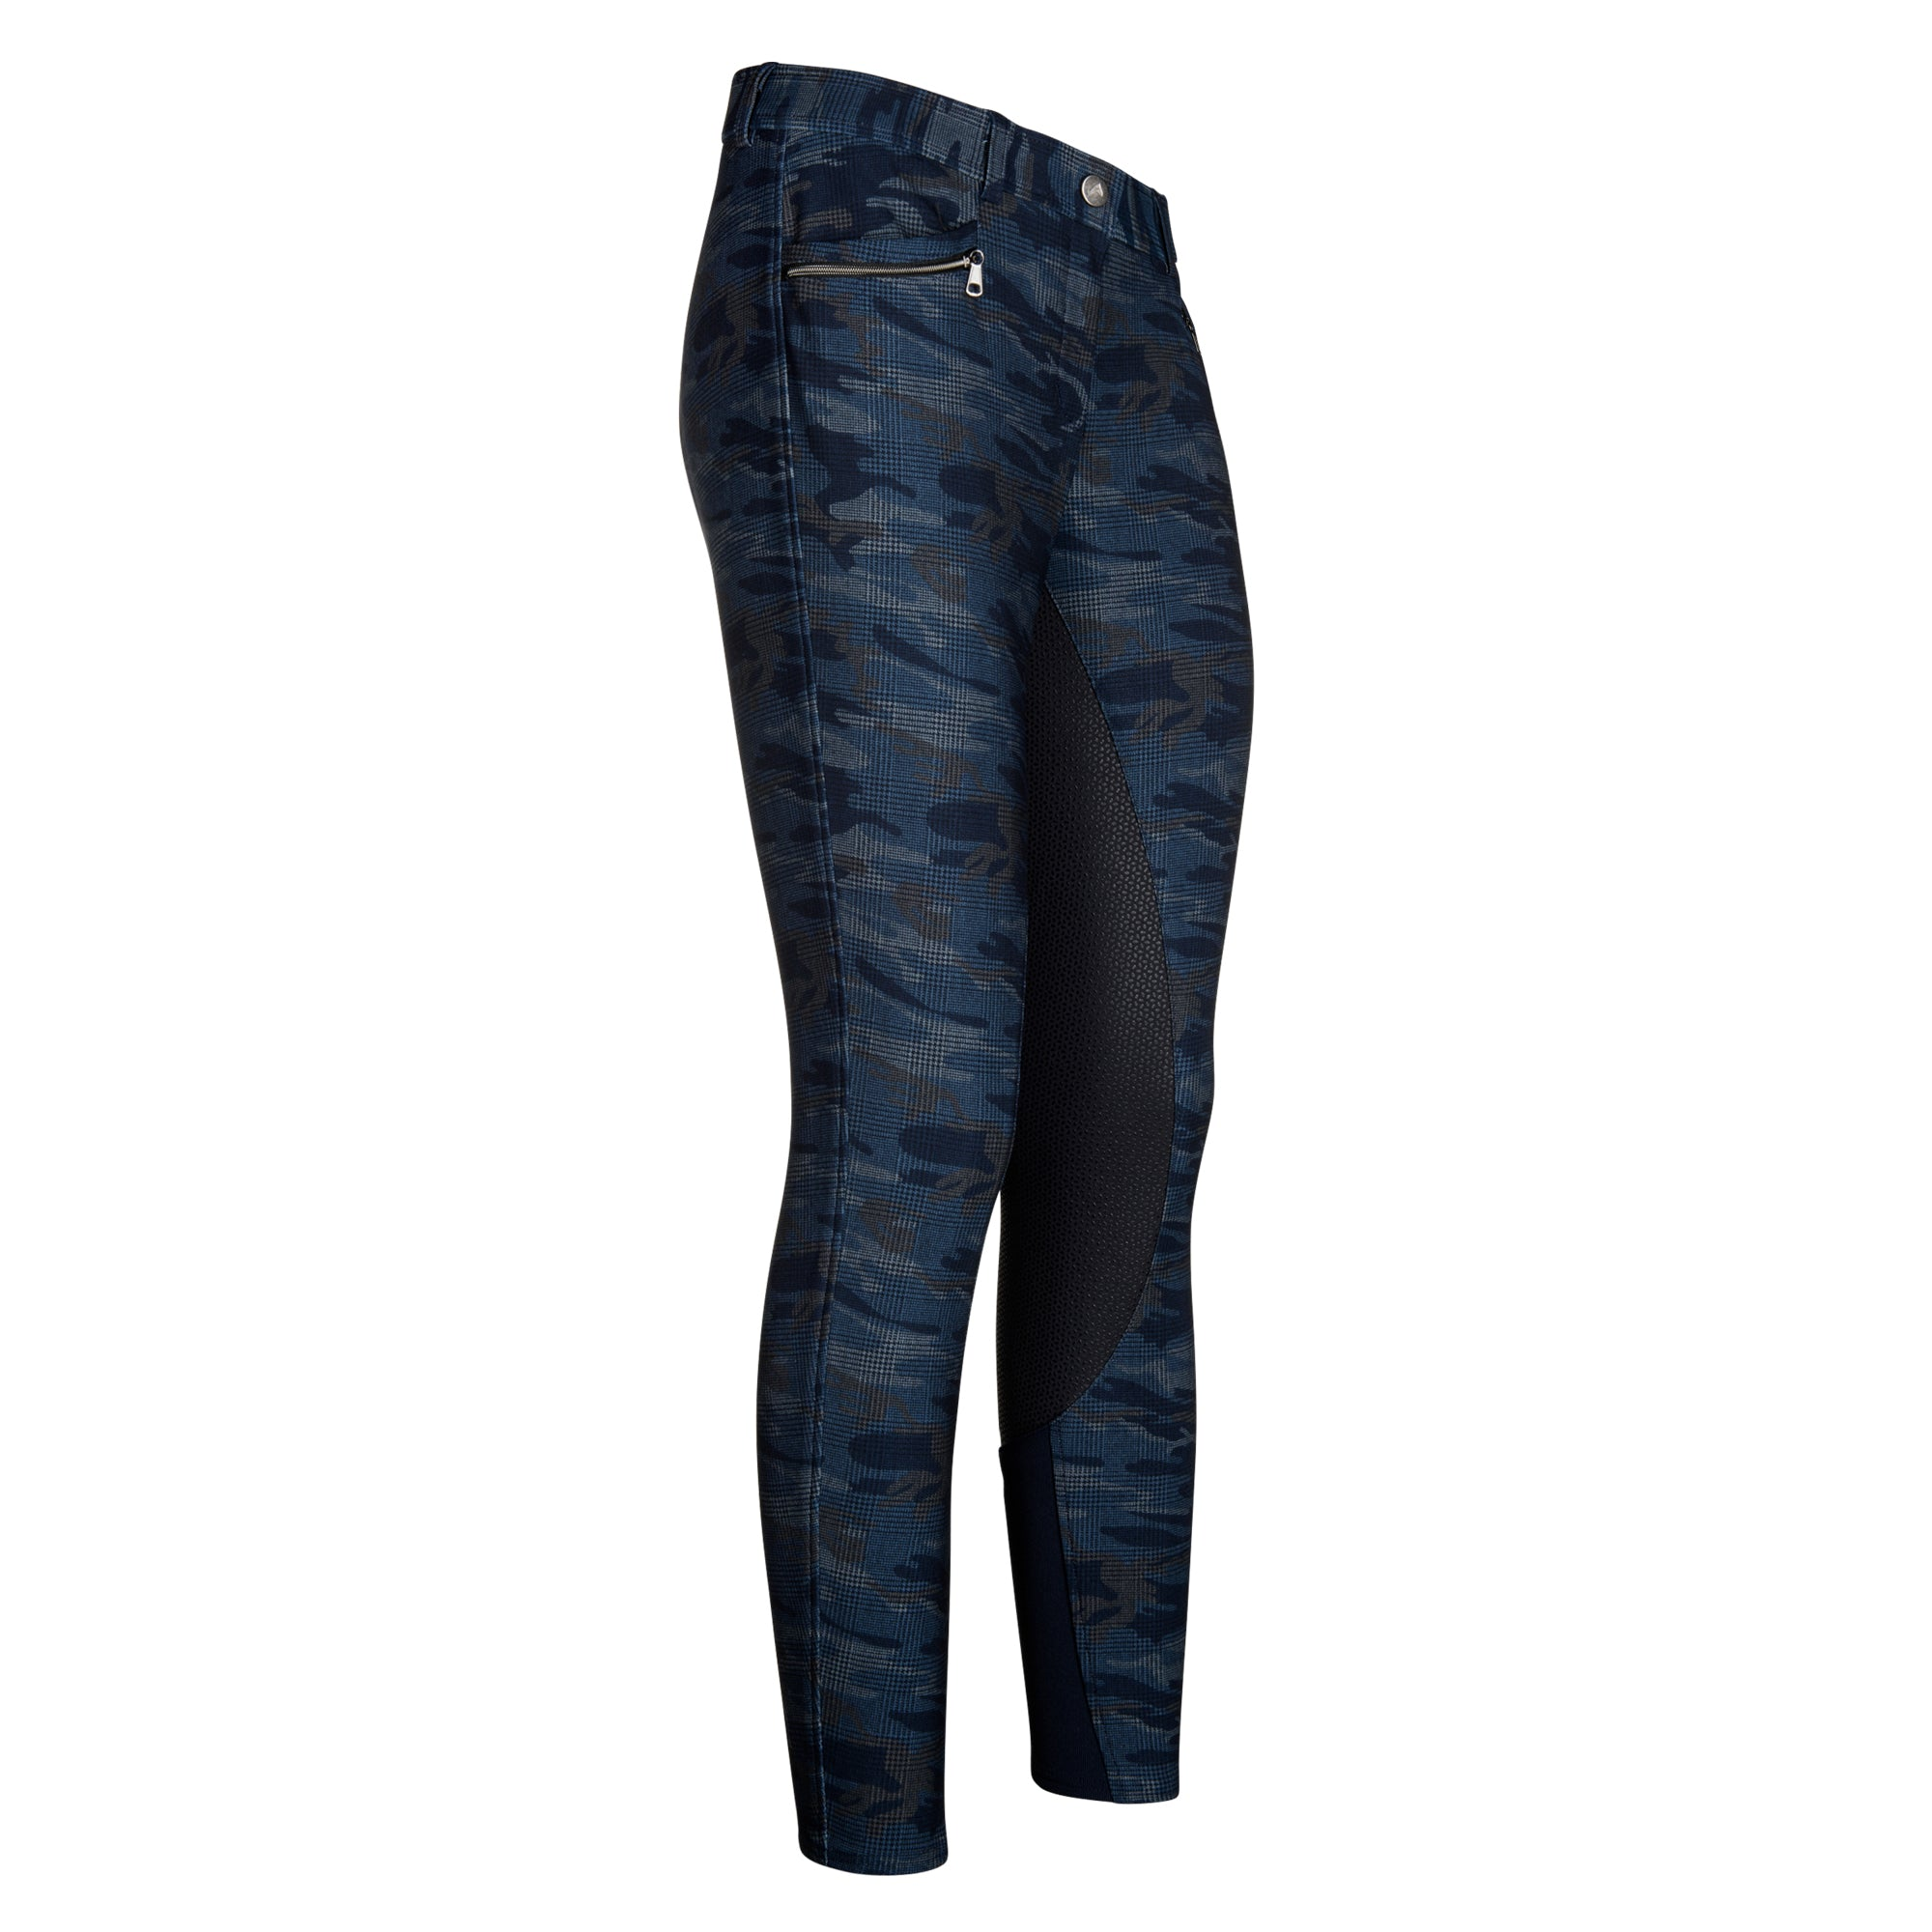 Euro-star AW17 Infinity Full Grip Breeches - Navy Camo